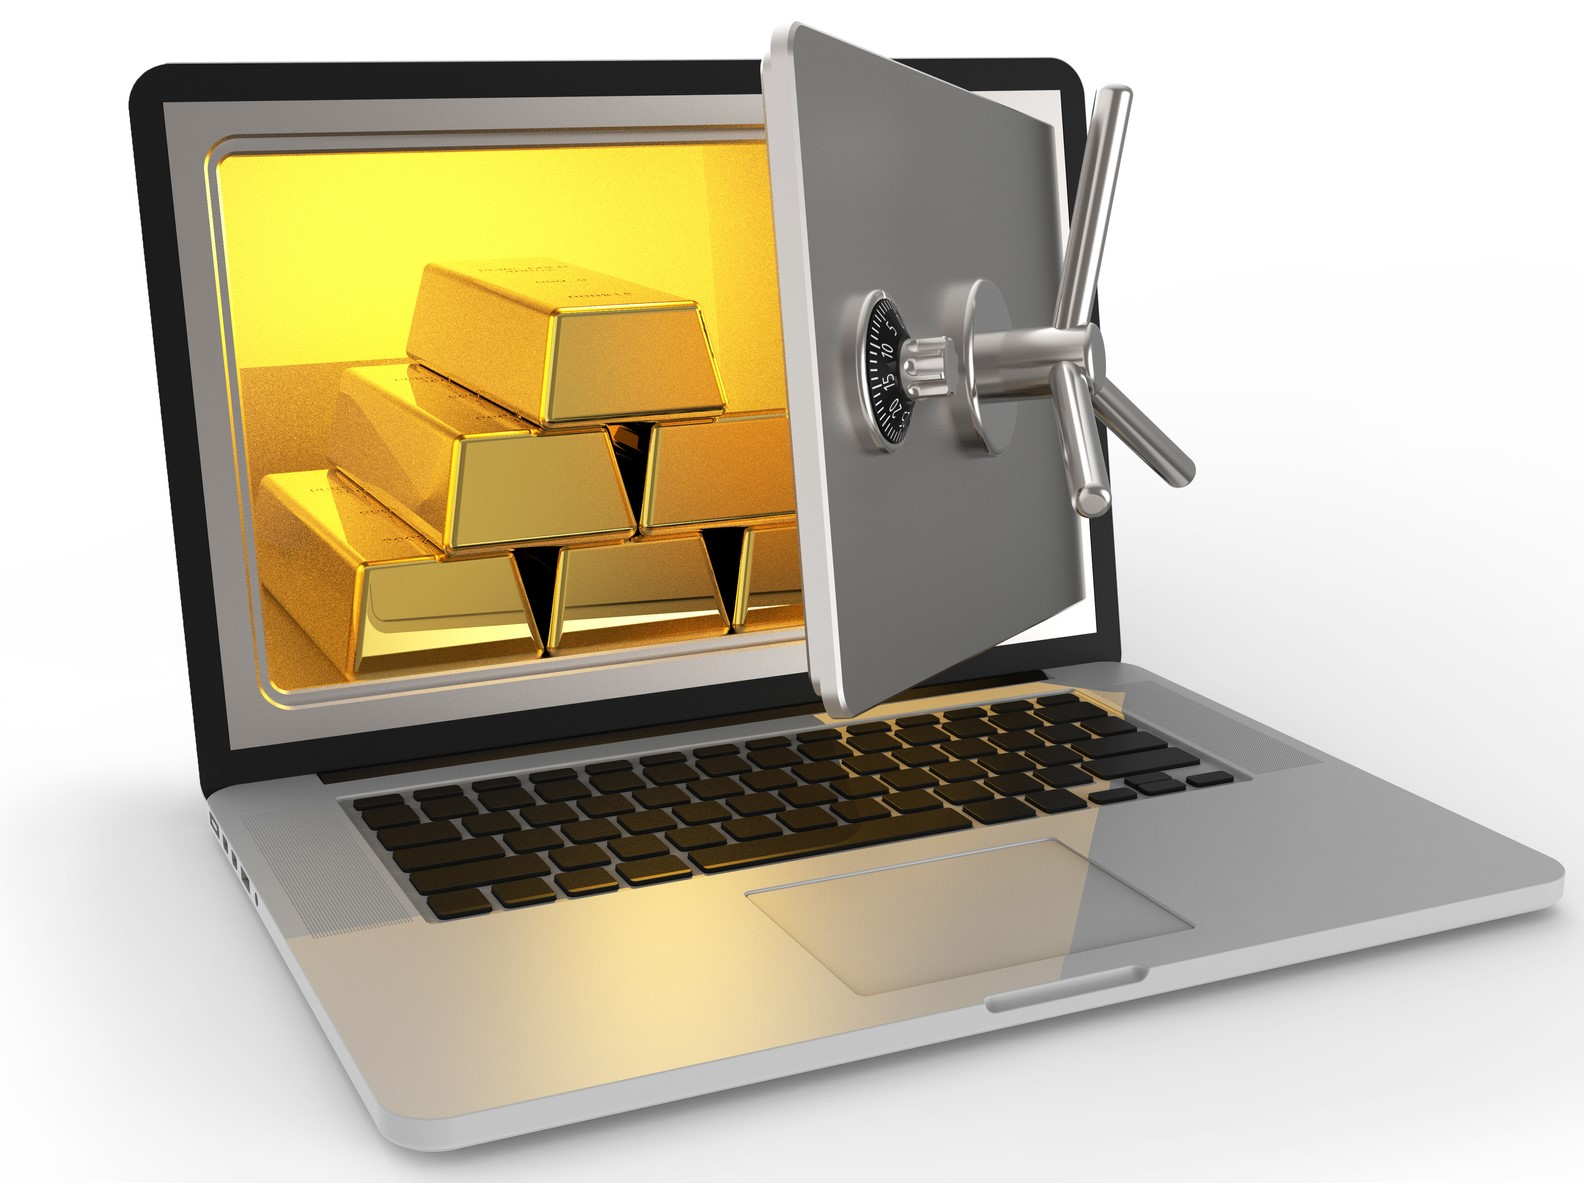 digital gold laptop3 iStock-629023912jpg